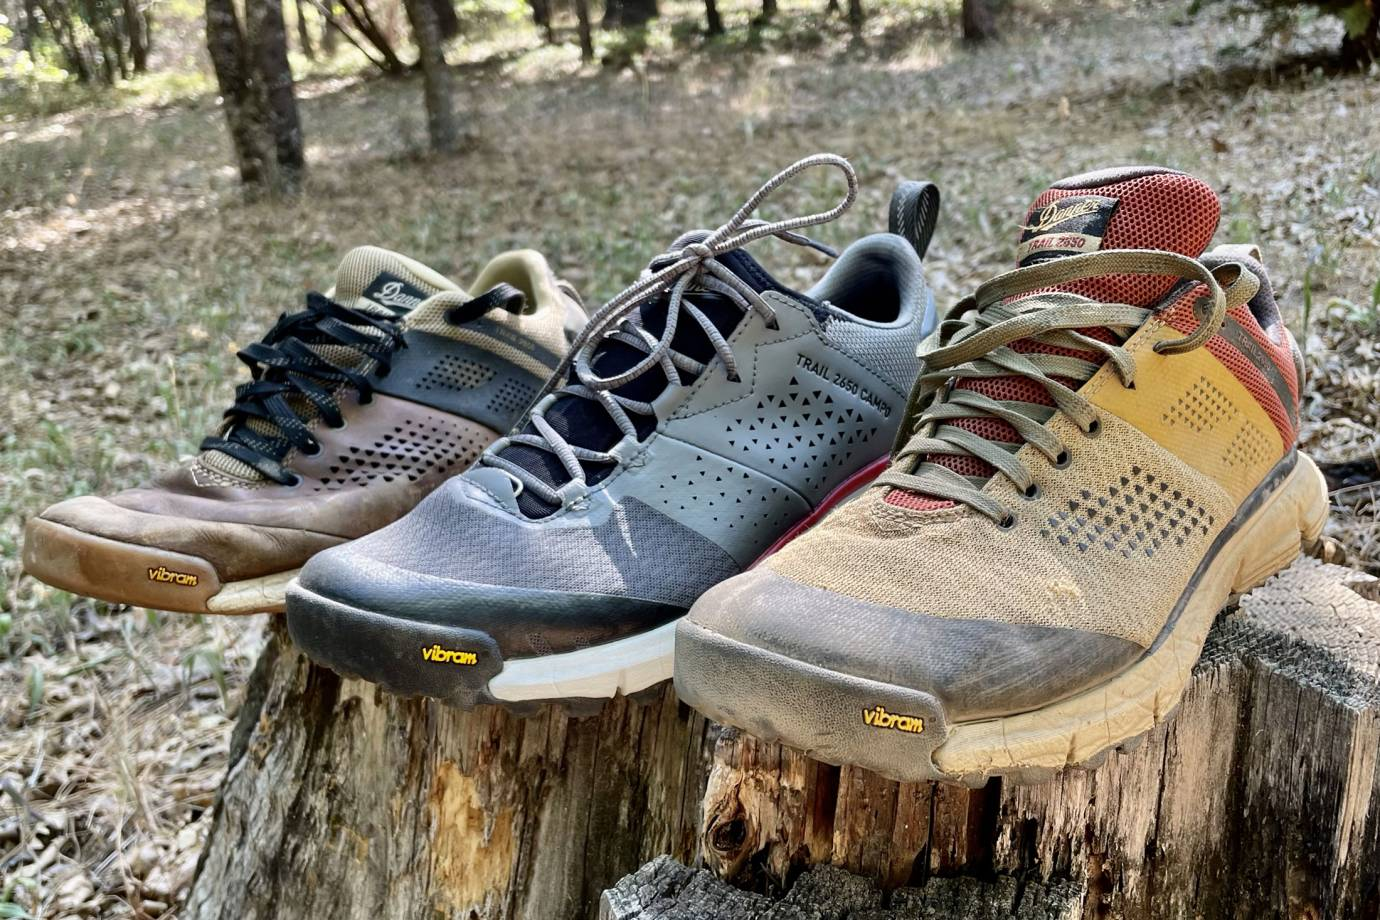 danner 2650 mesh and campo